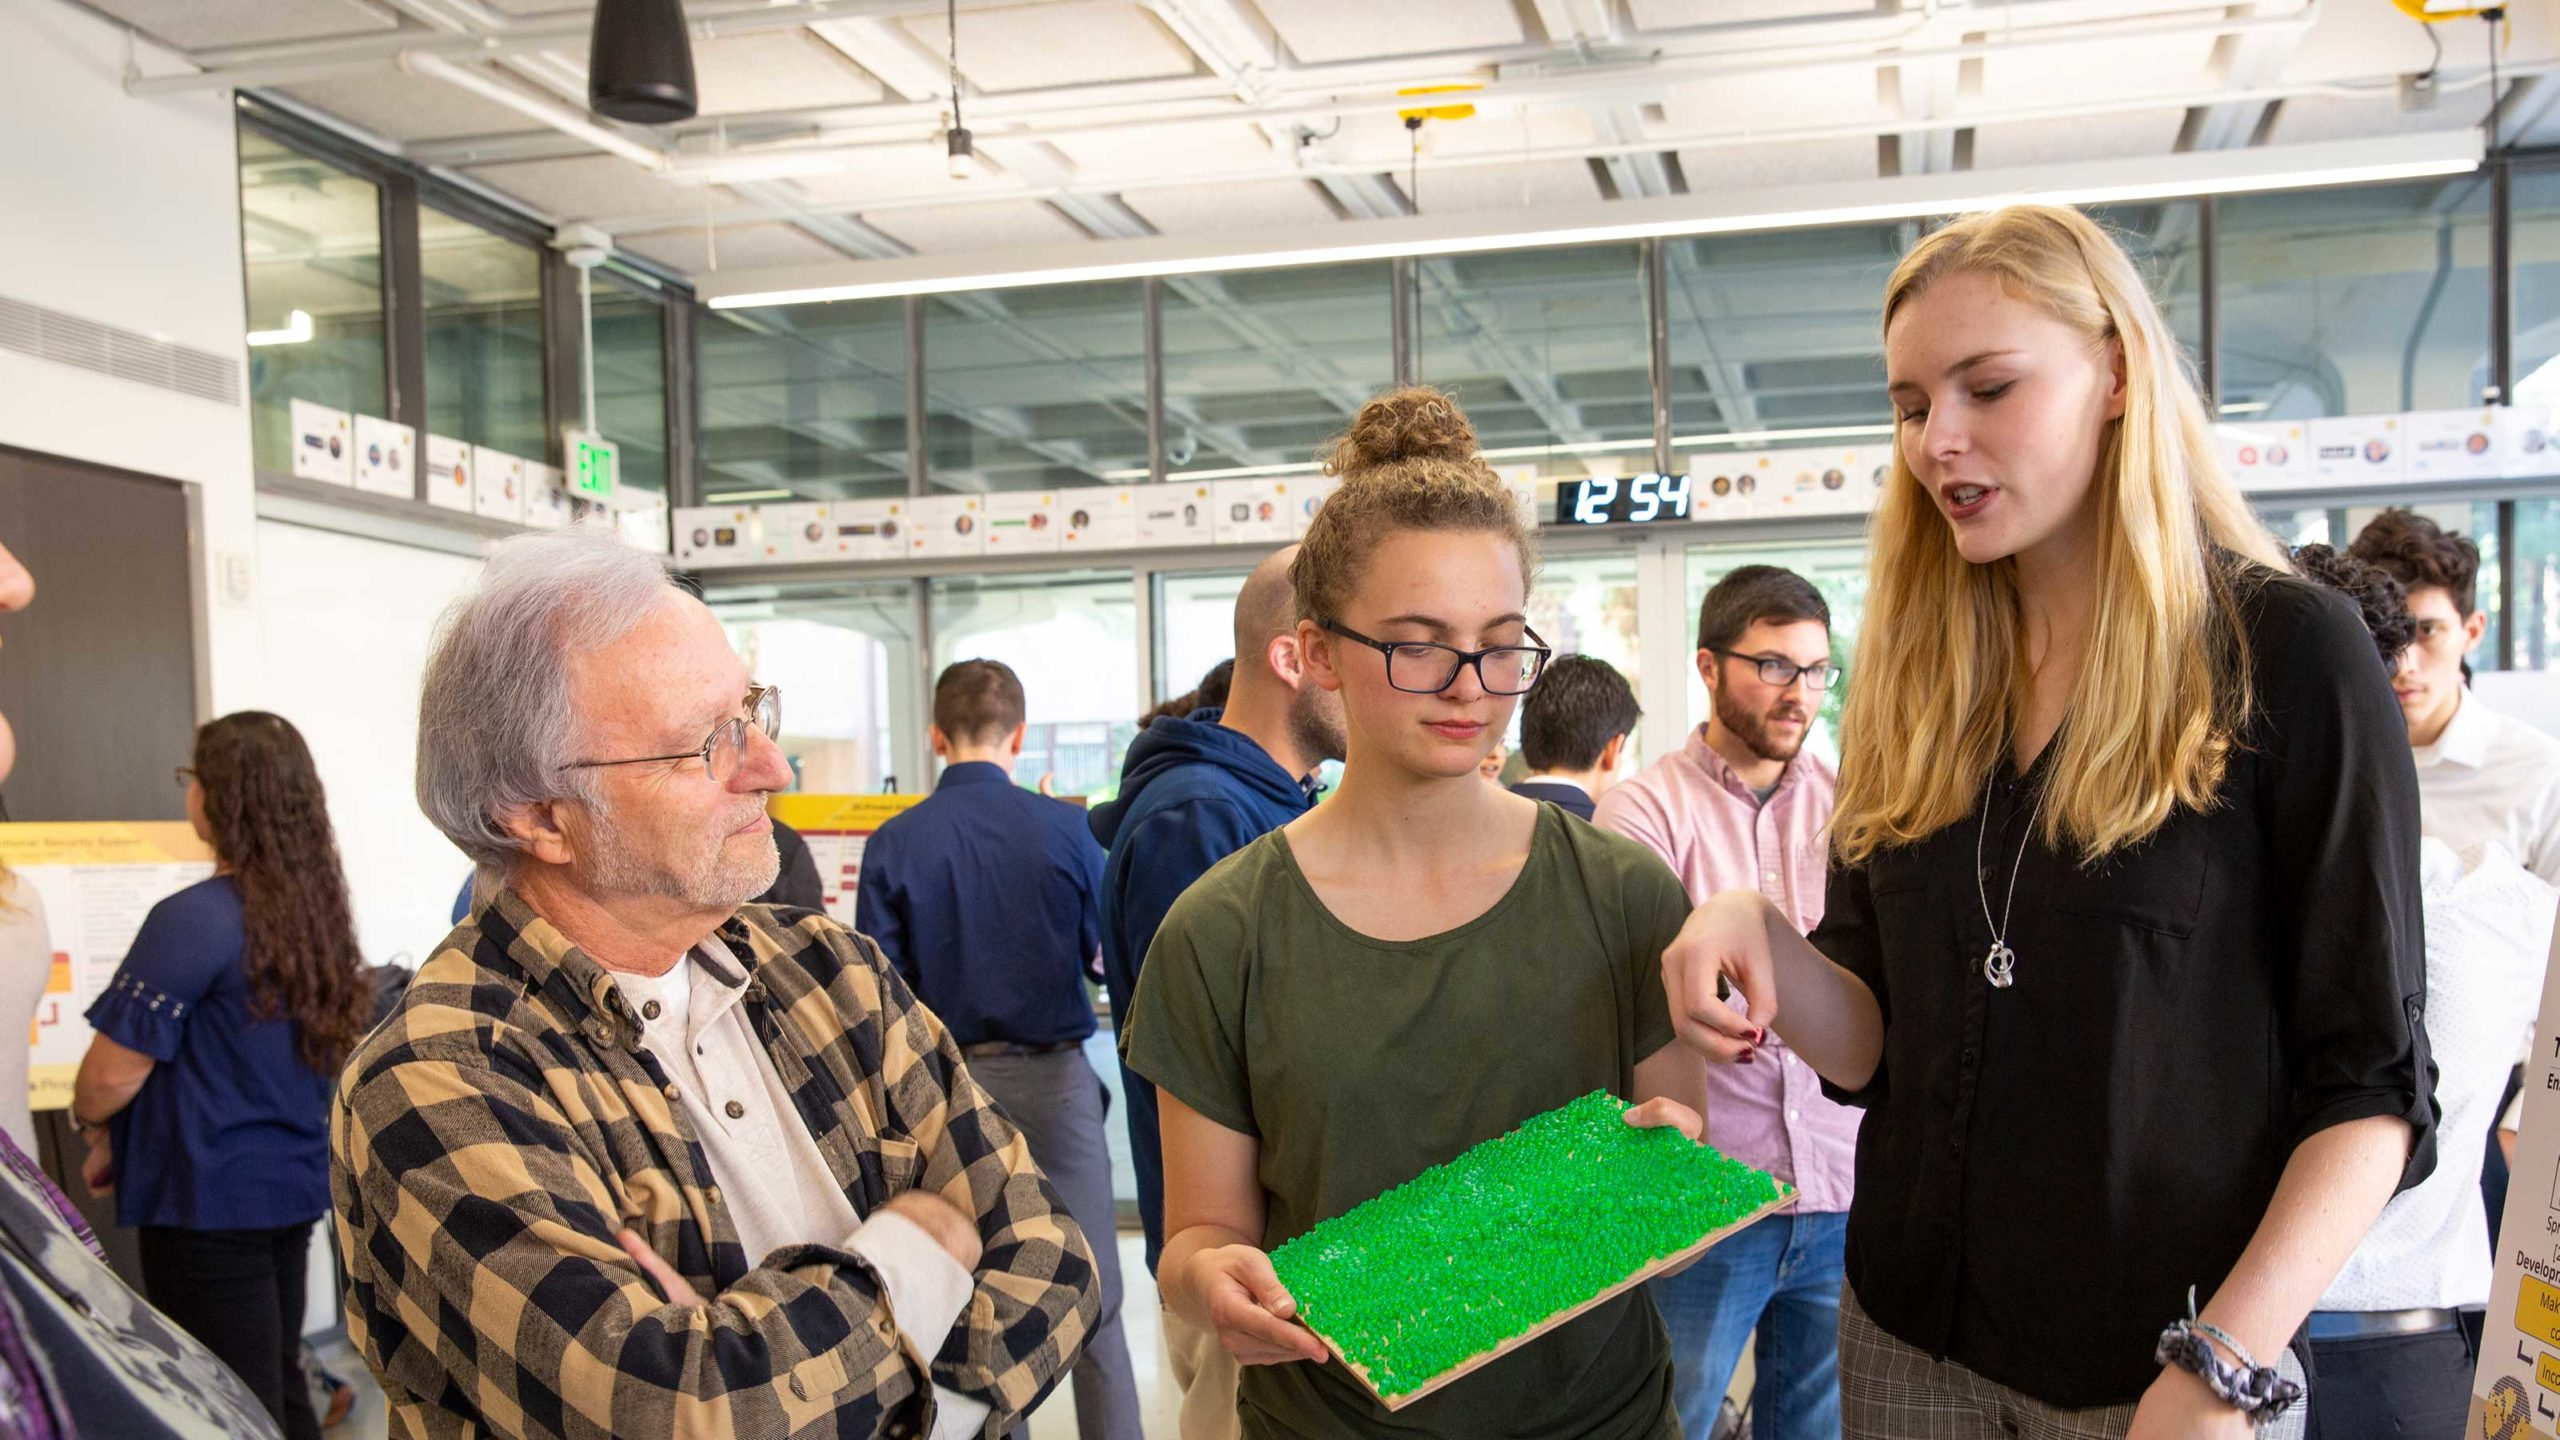 Emily Hagood and Audrey Schlichting present their theoretical photosynthetic paint project at the Futuristic Solutions for the Grand Challenges poster presentation